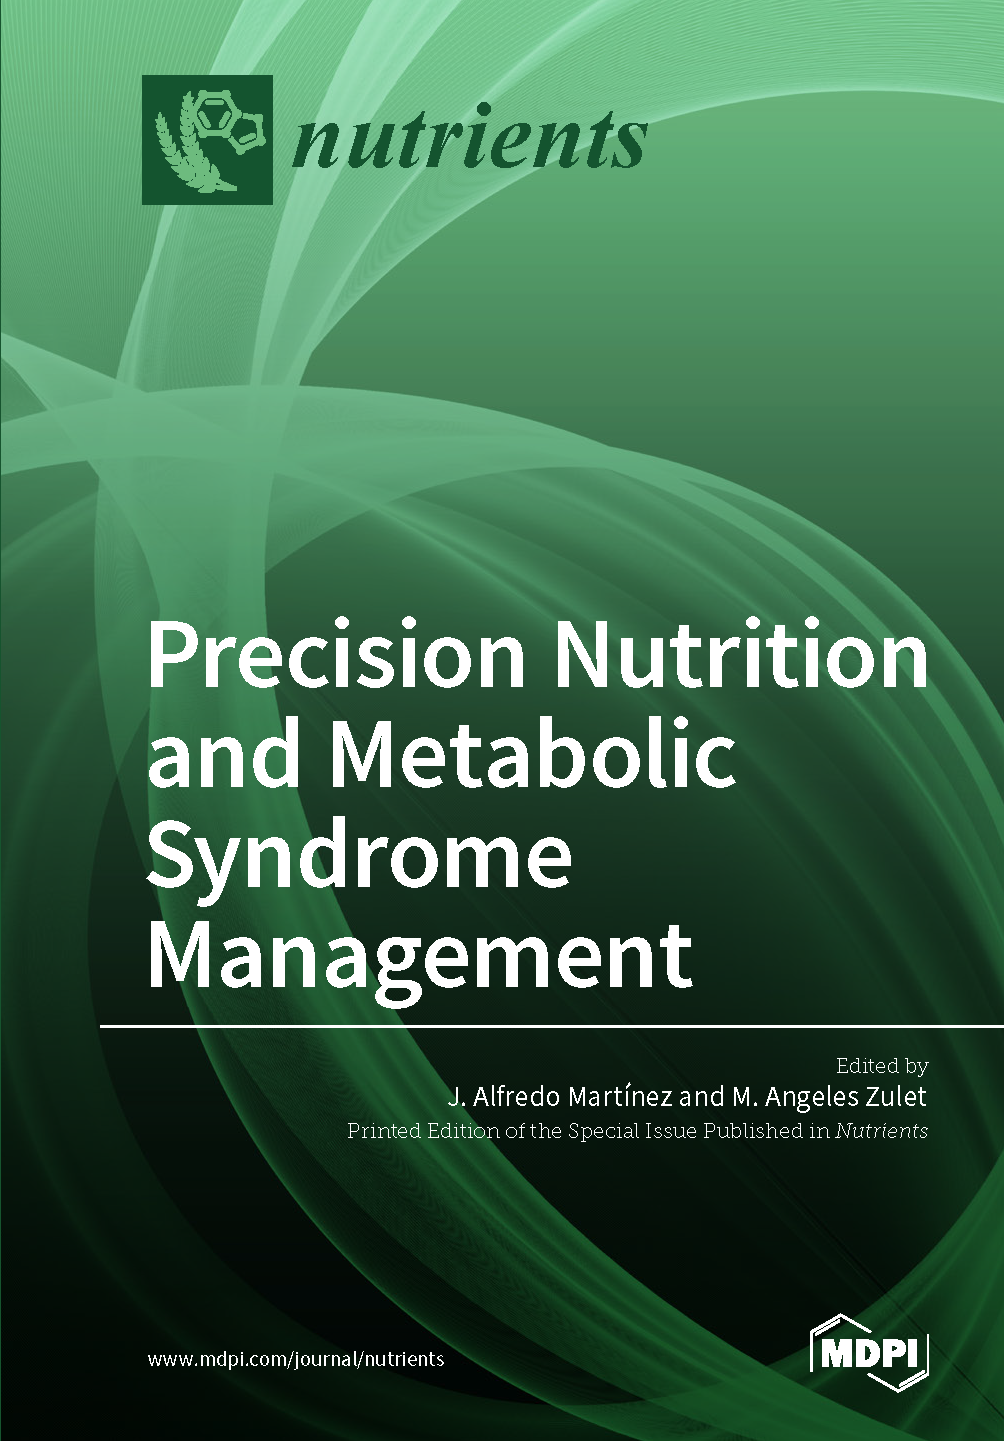 Precision Nutrition and Metabolic Syndrome Management